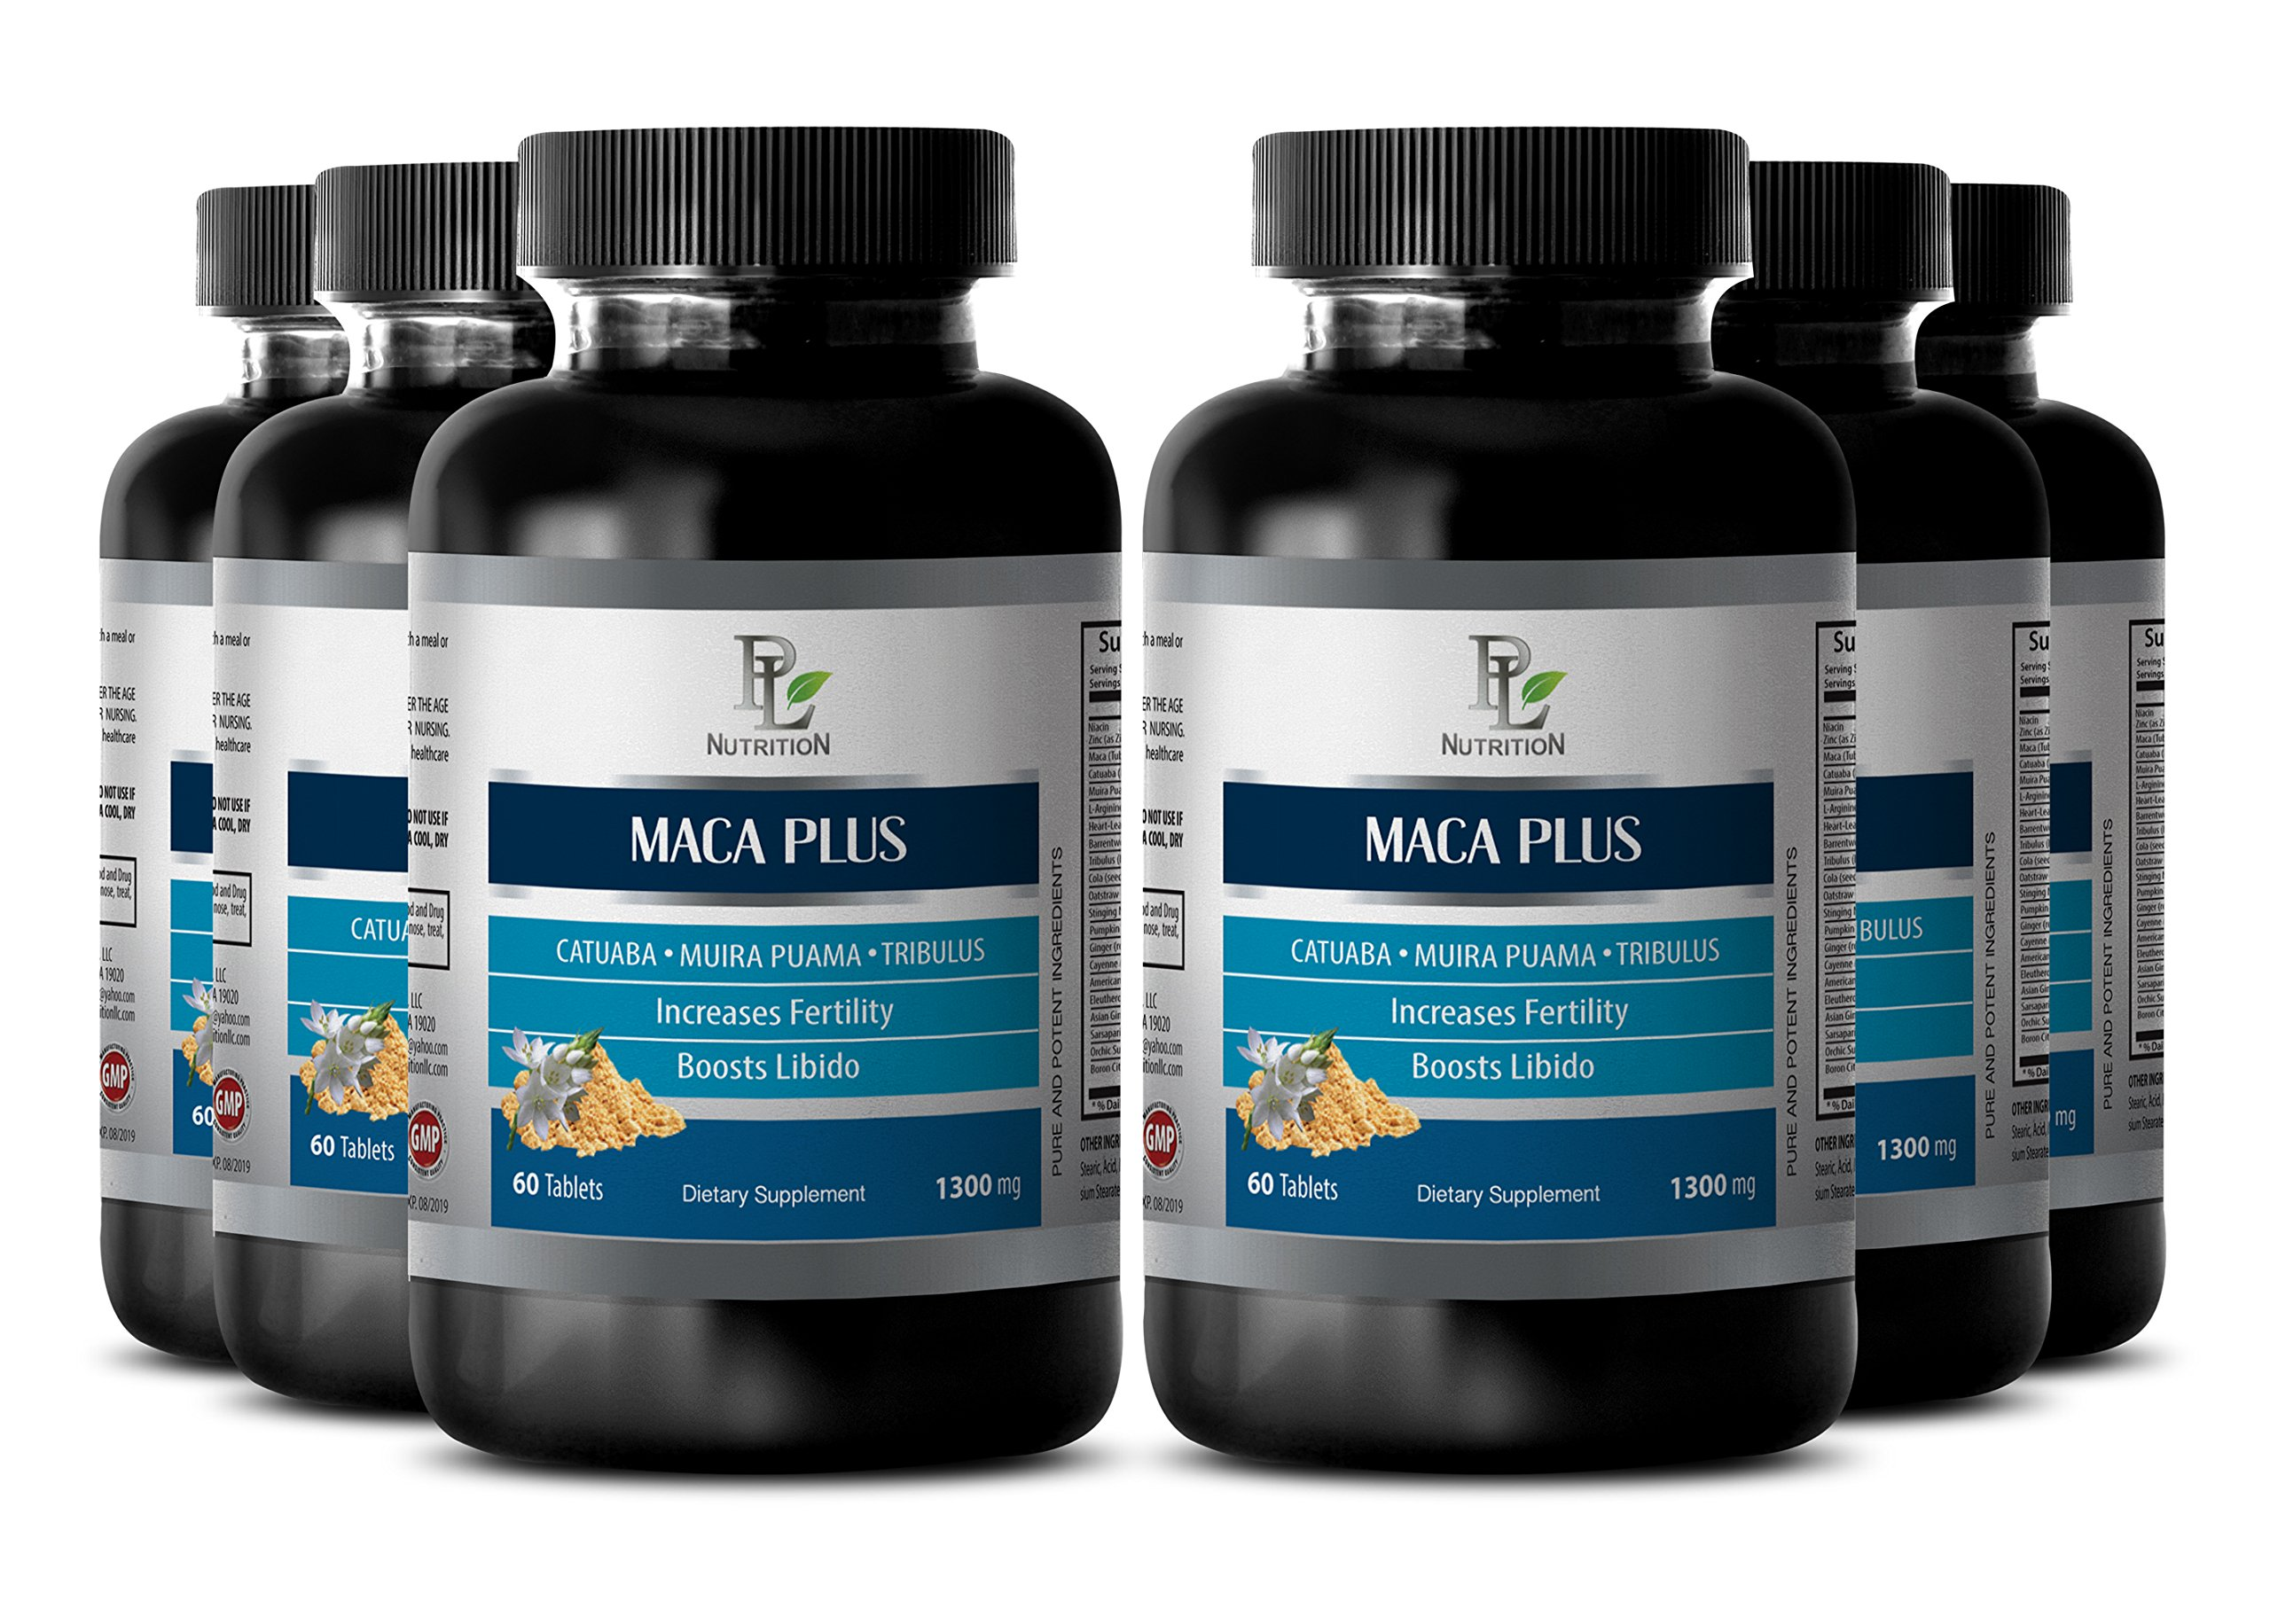 Natural sex boosters - MACA PLUS - Maca natural - 6 Bottle 360 Tablets